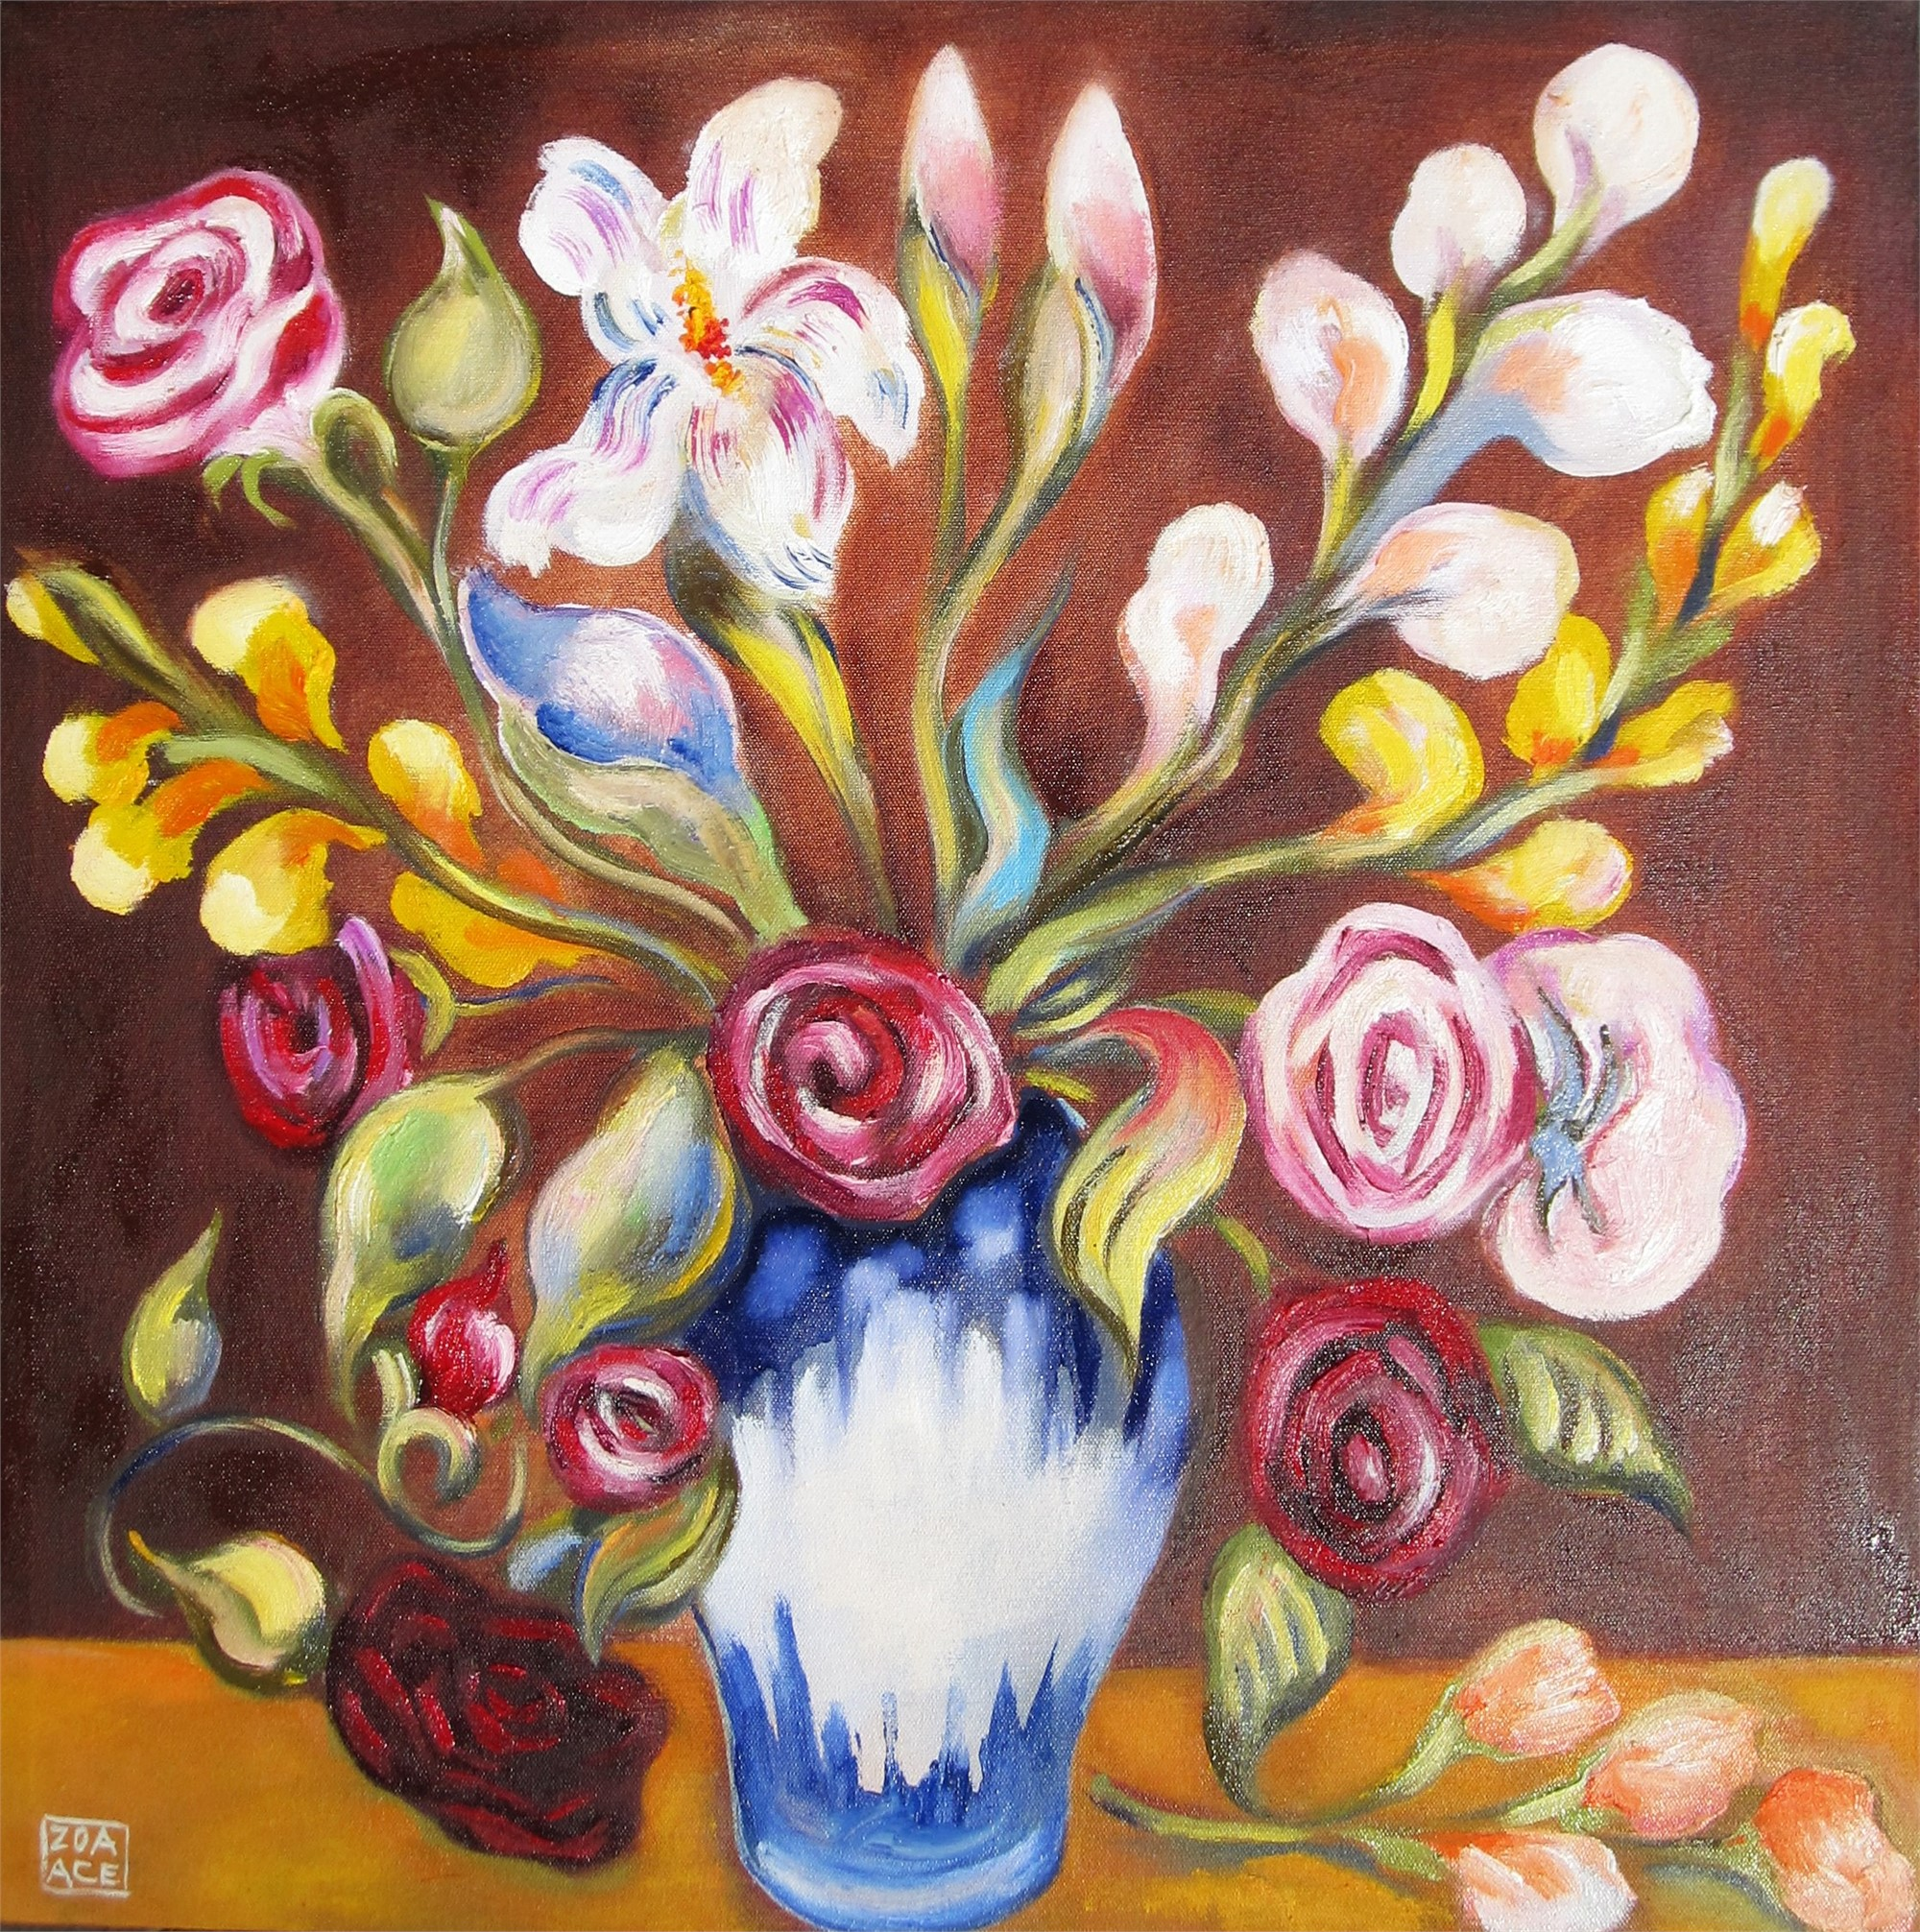 Bouquet on Brown by Zoa Ace